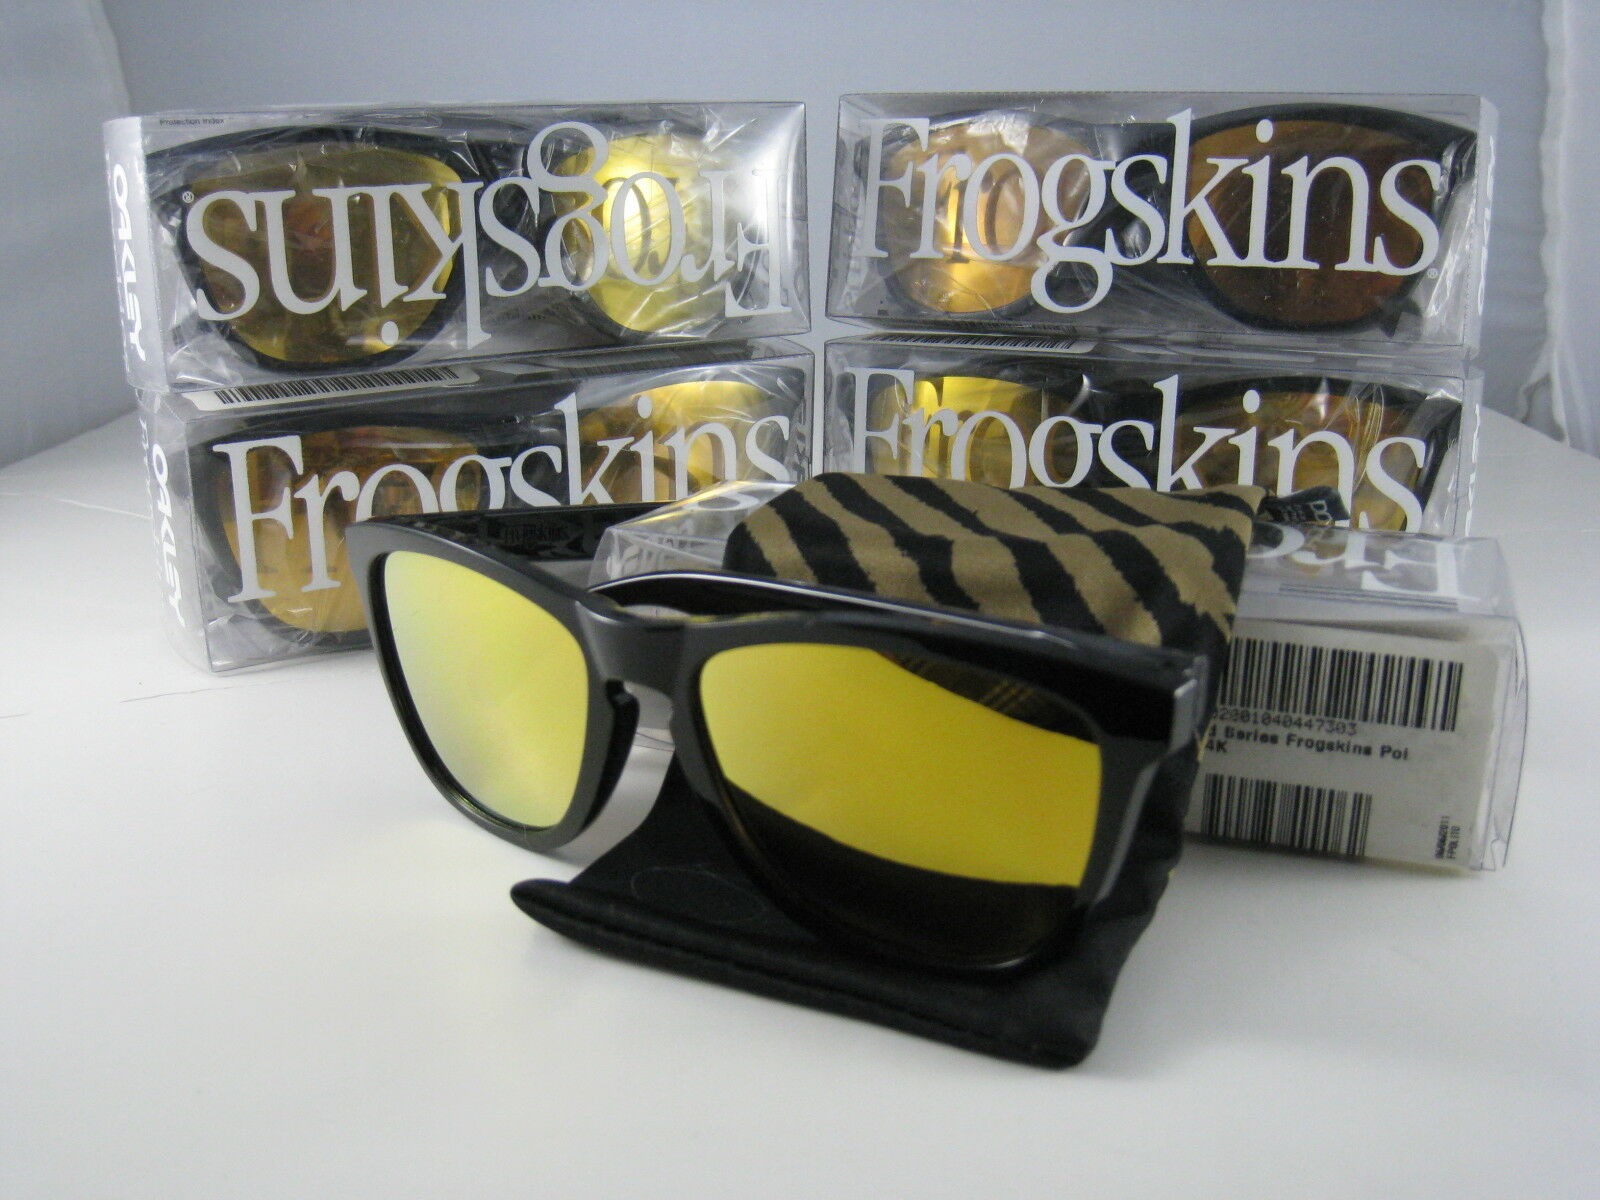 f4dbaf7730 Oakley Frogskins Sunglasses Black 24k Shaun White RARE Frog USA 2011 24-272  for sale online